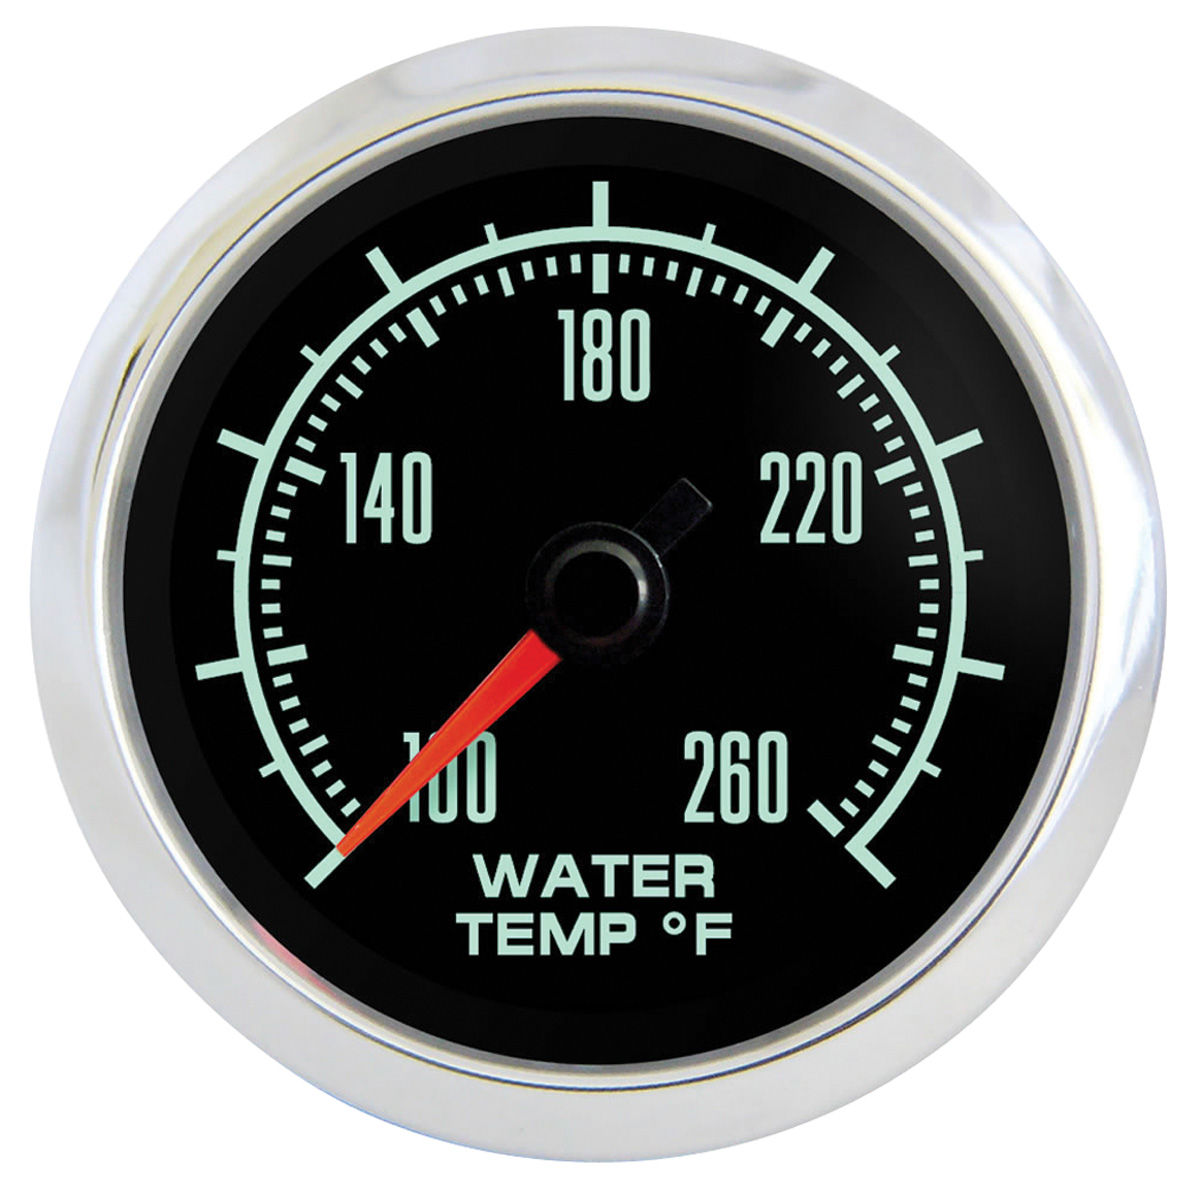 "Photo of Chevelle Gauge, Retro Muscle 2-1/16""water temp. gauge"